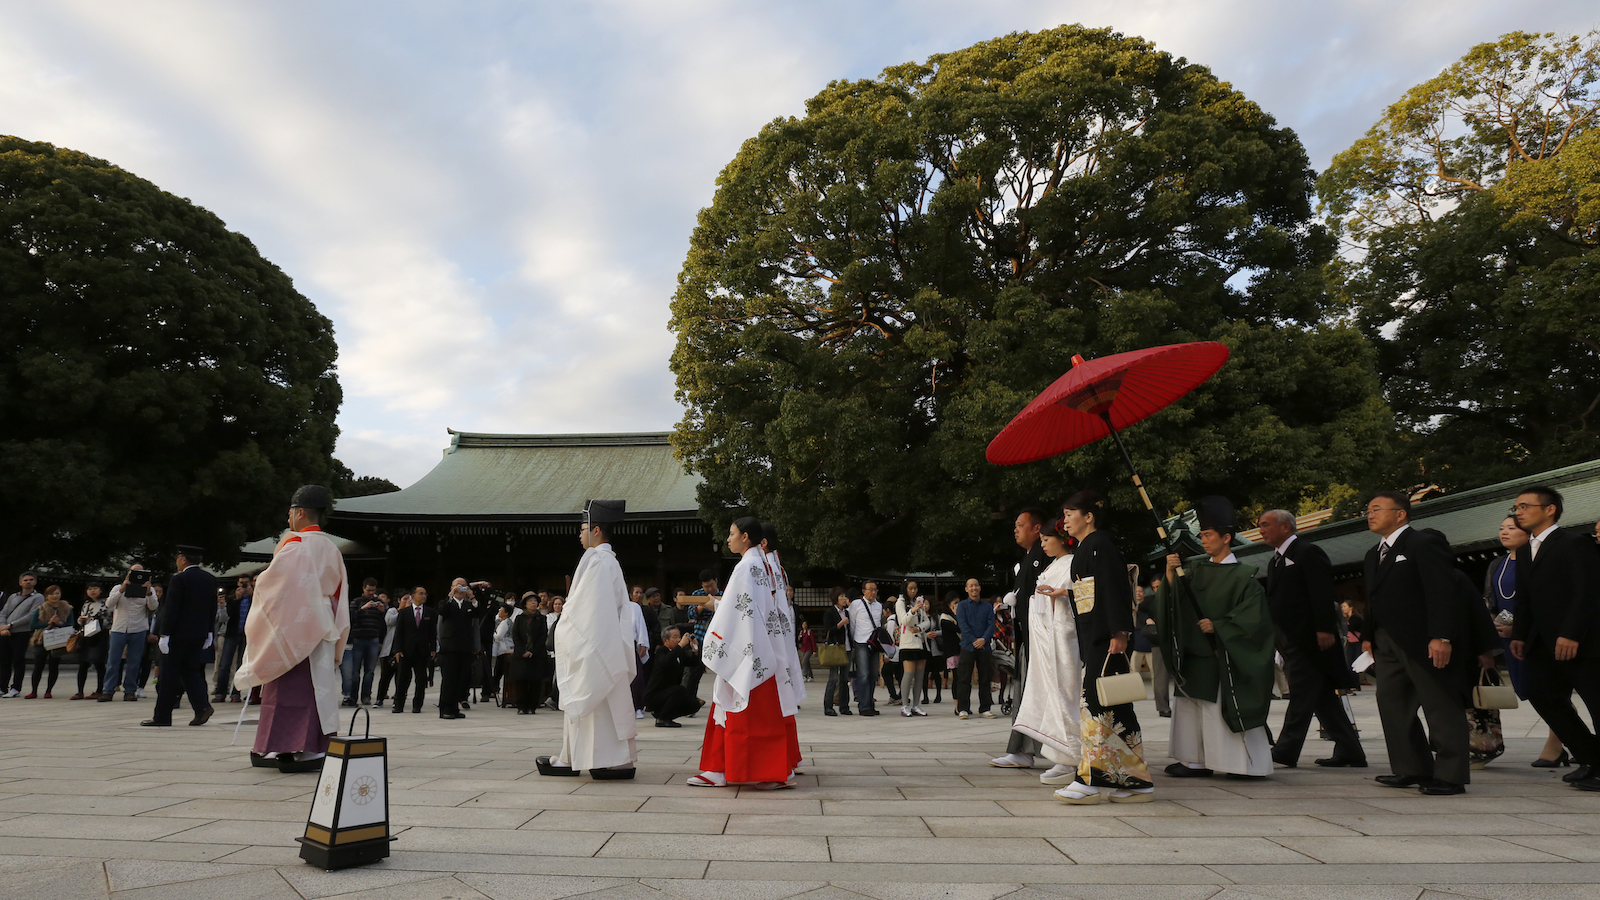 A newlywed couple, fourth and fifth from left, are escorted by a Shinto priest at Meiji Jingu Shrine during a Japanese traditional wedding ceremony in Tokyo, Monday, Nov. 3, 2014. (AP Photo/Shizuo Kambayashi)